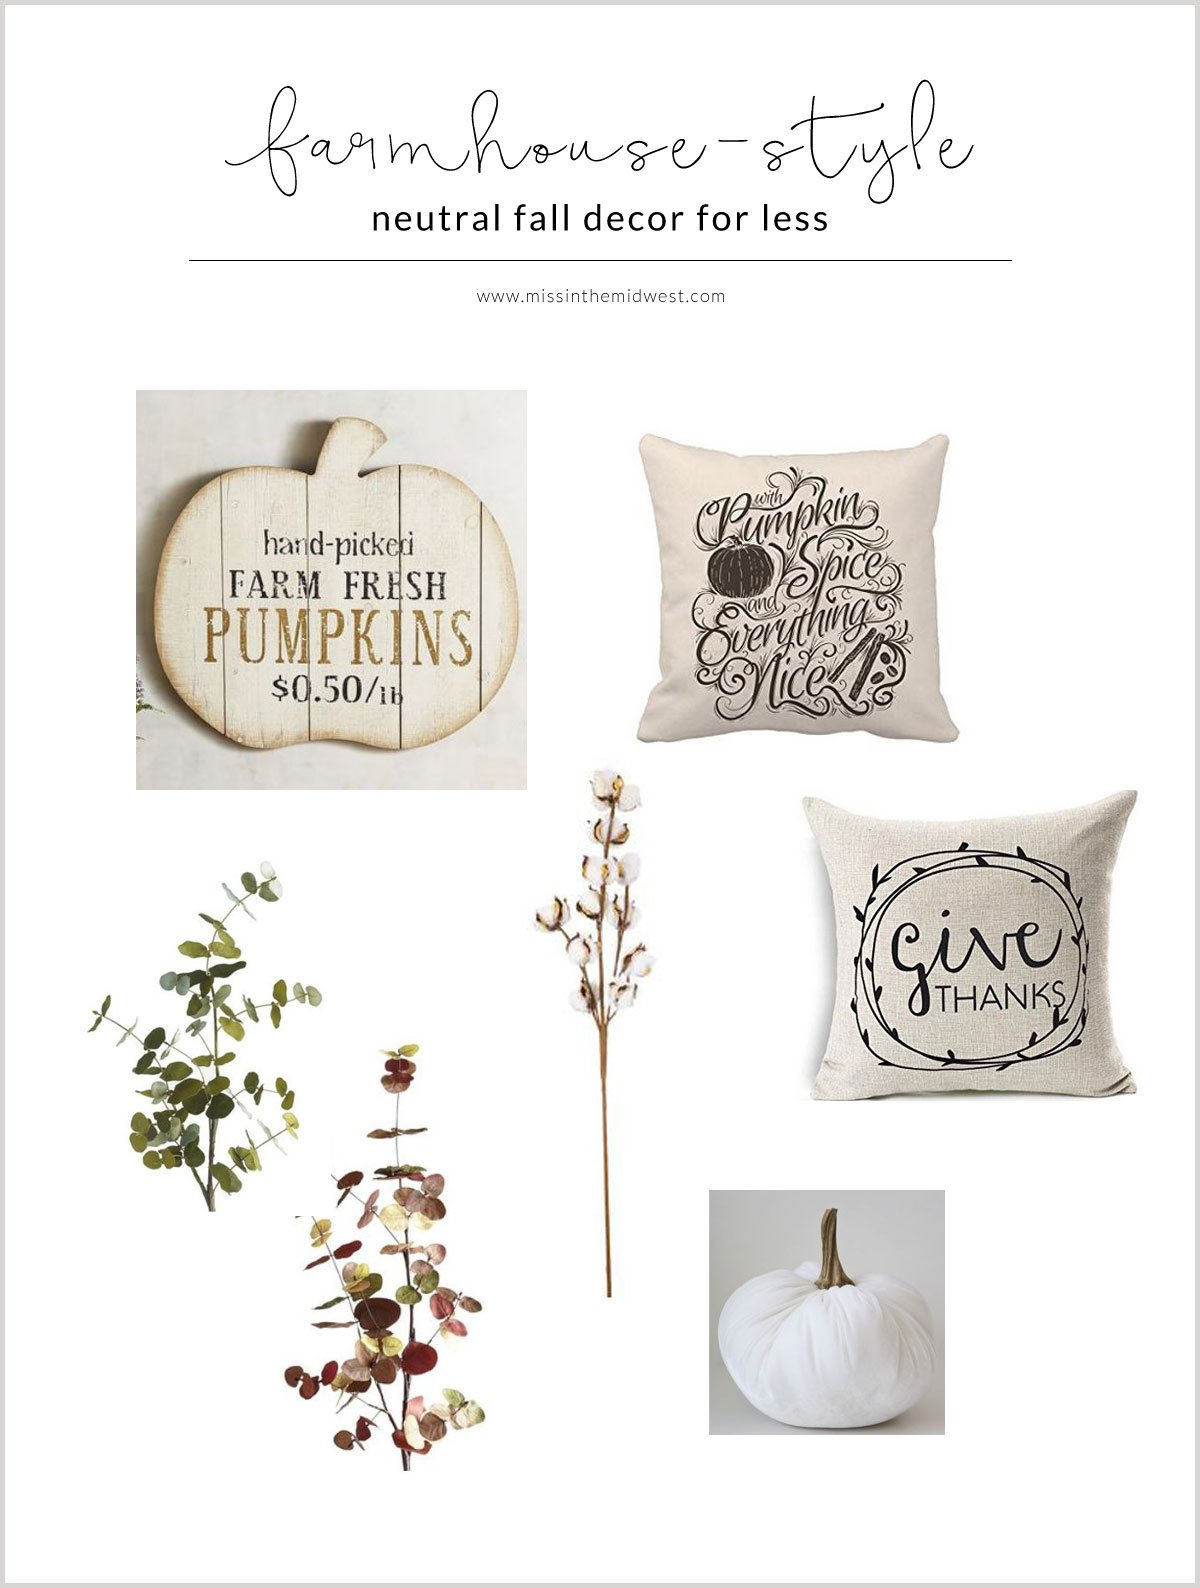 Neutral Farmhouse-Style Fall Decor for Less